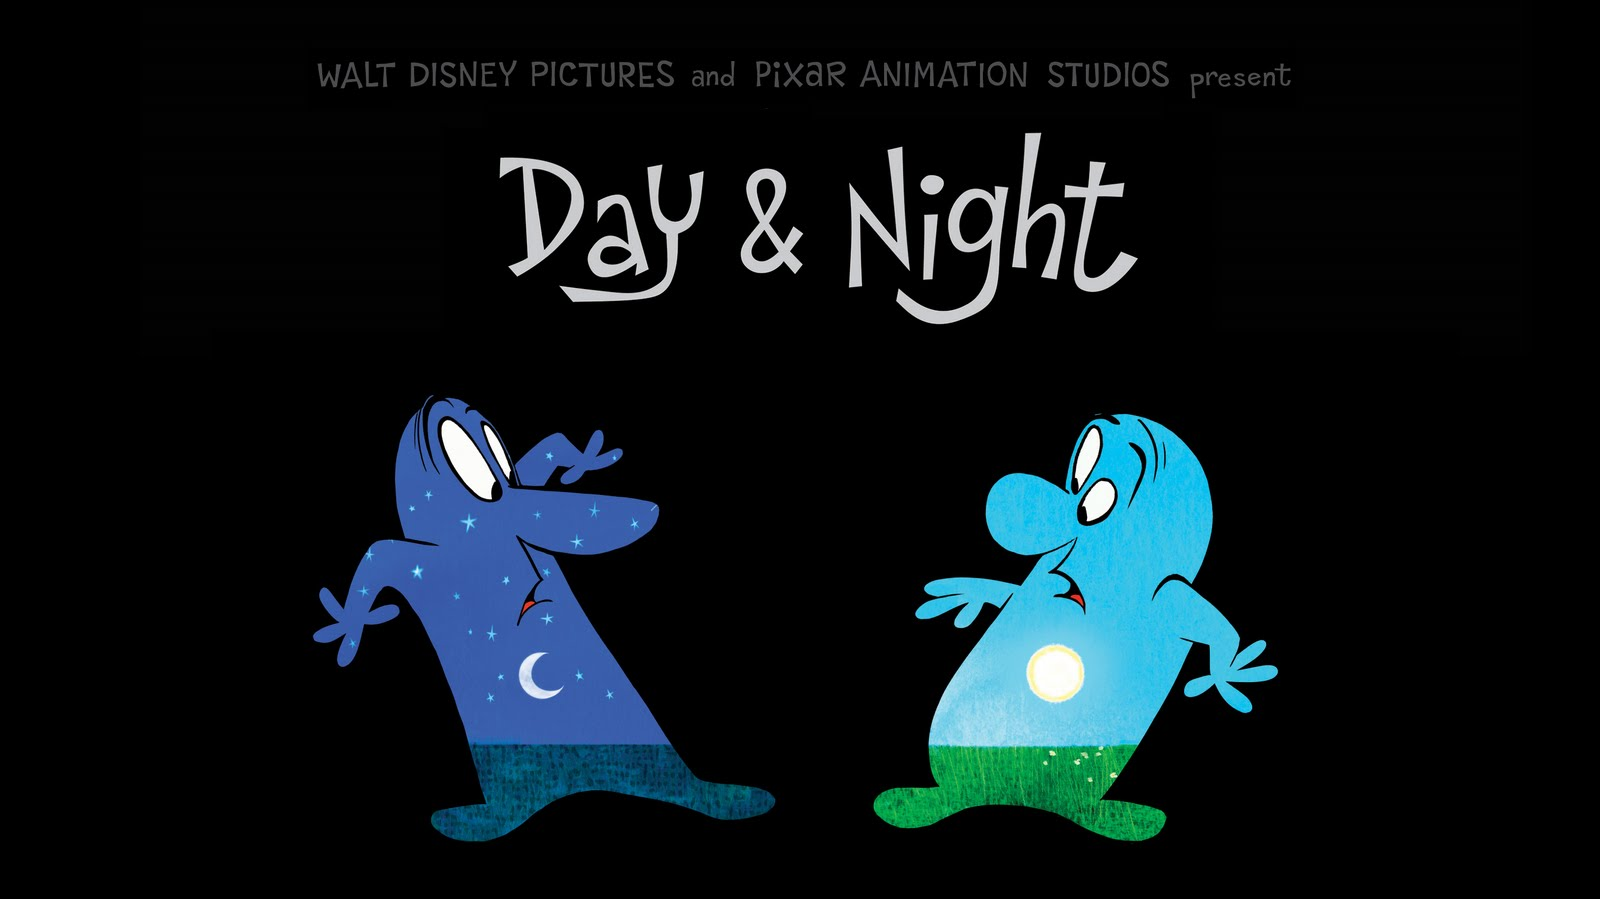 Day & Night by Pixar Animation